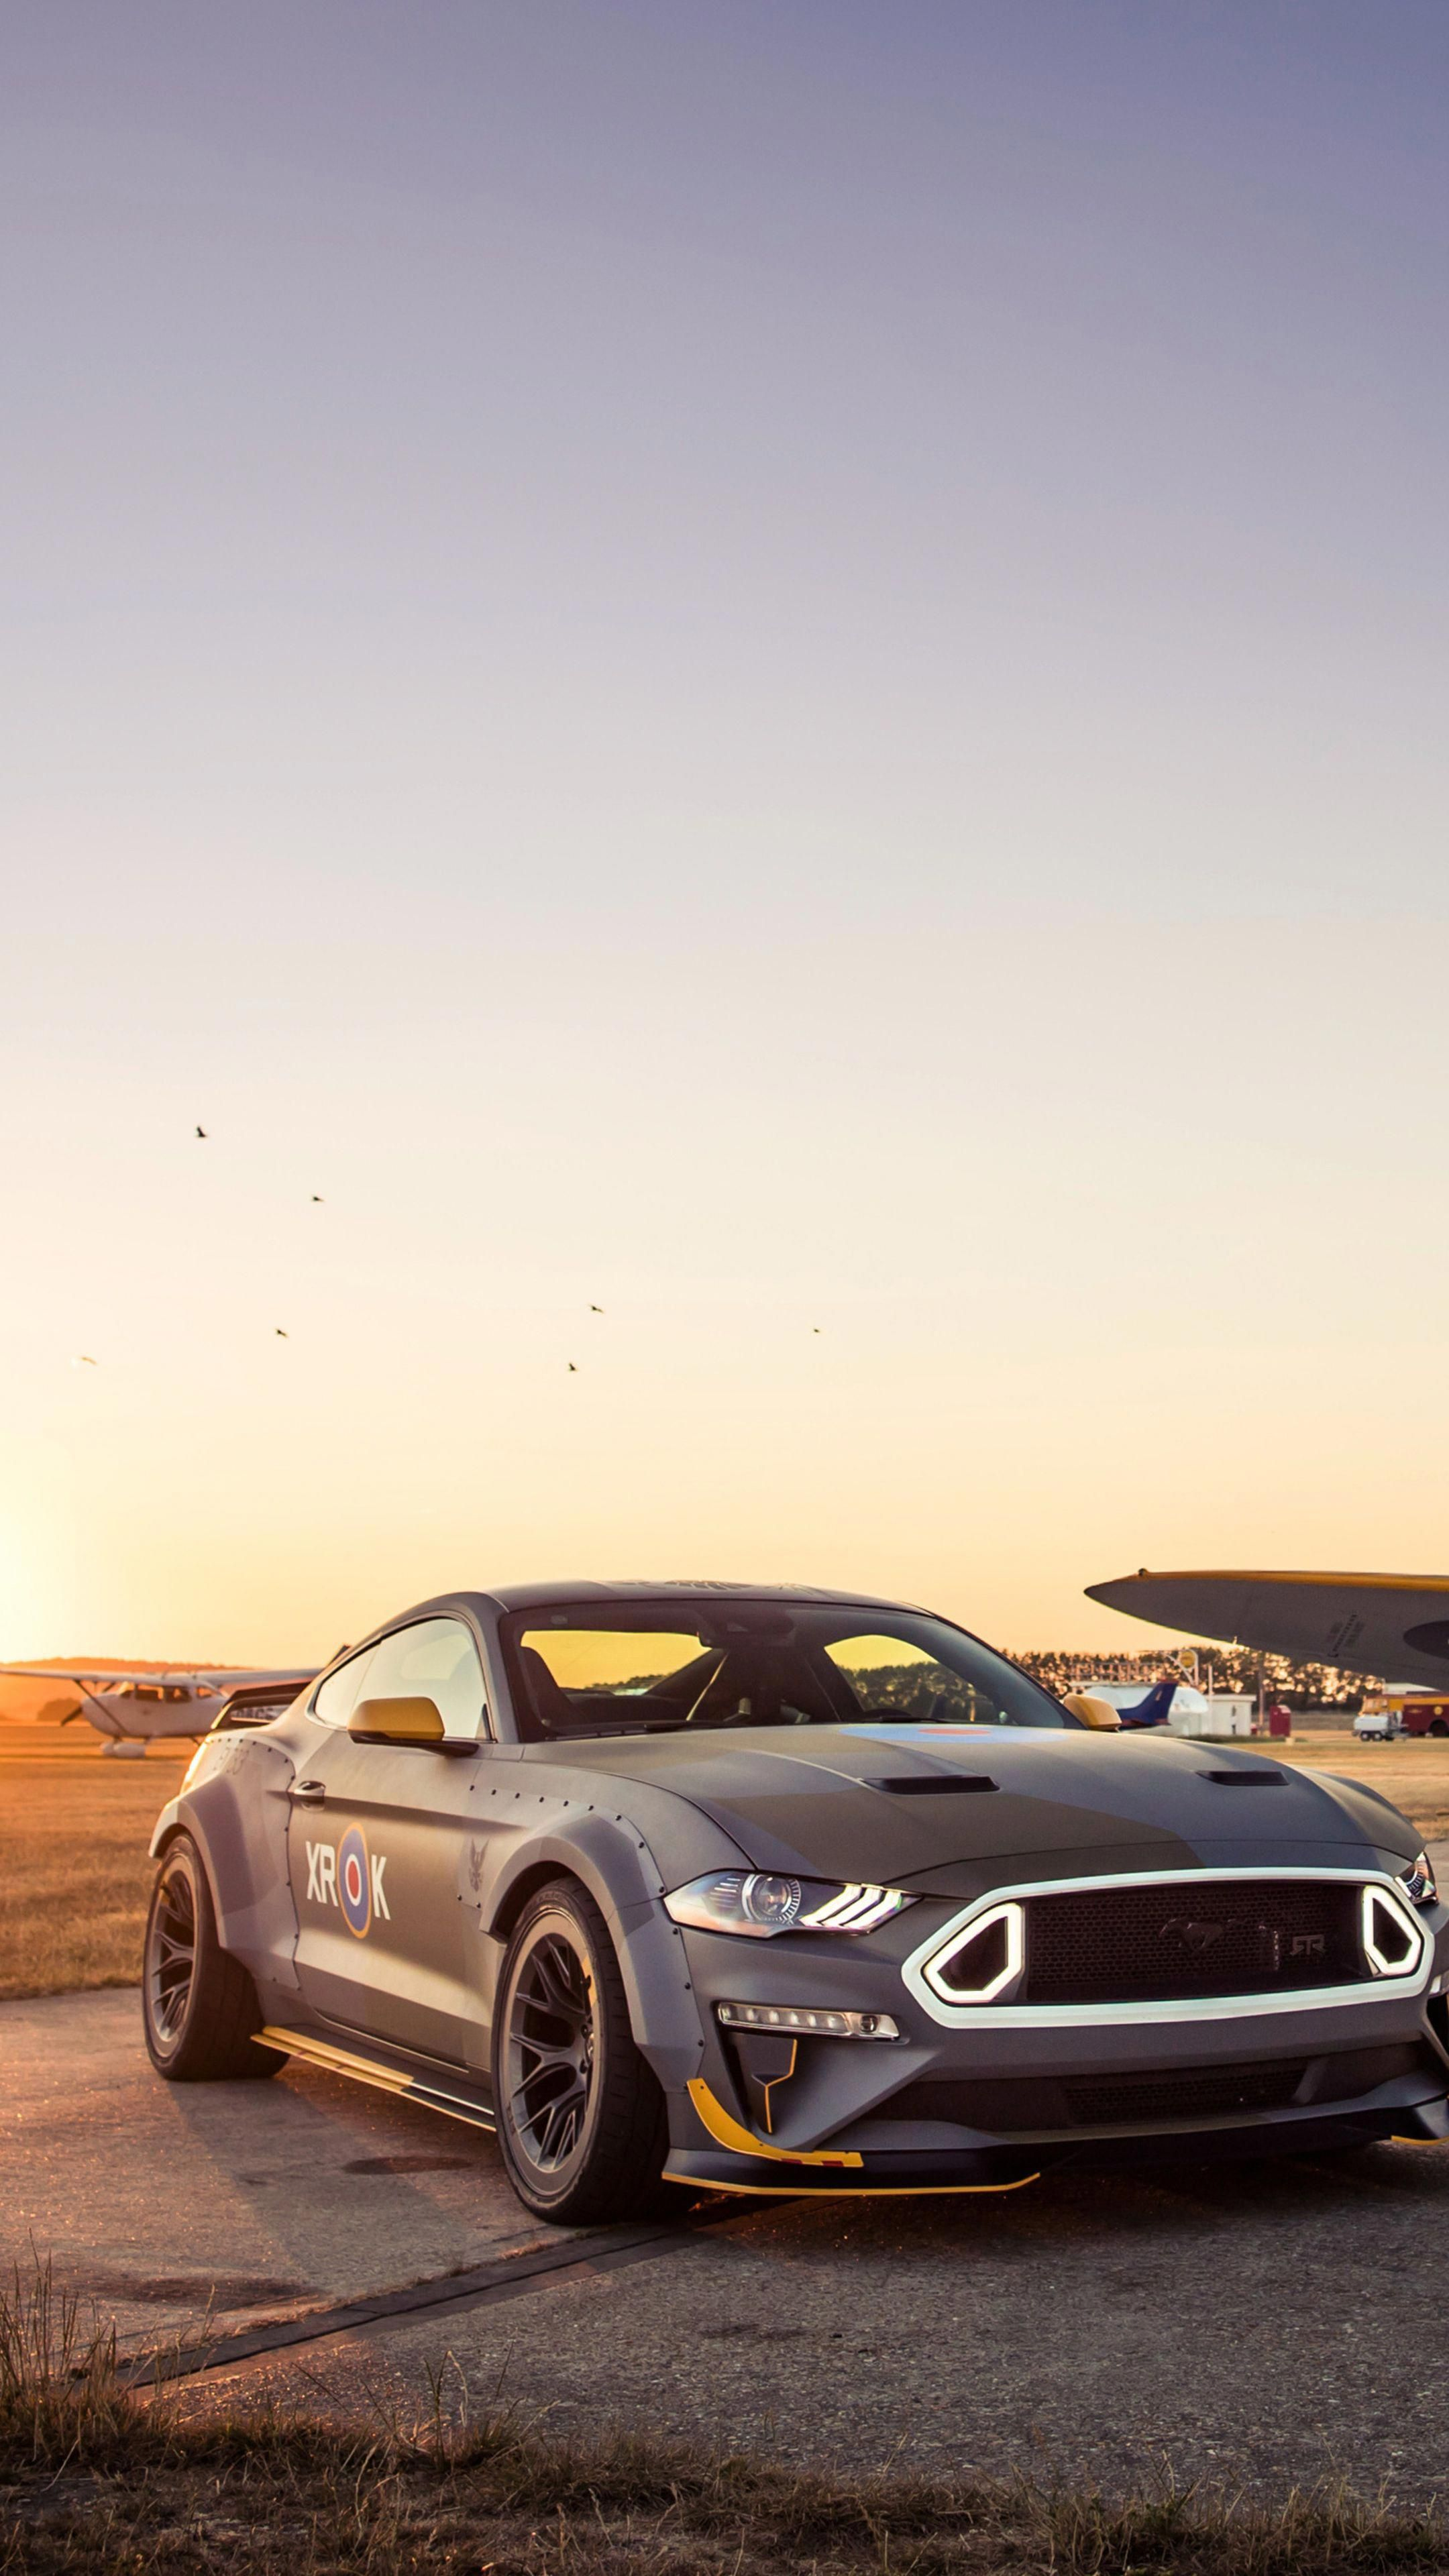 Cars Ford Eagle Squadron Mustang Gt Wallpapers Car Wallpapers Mustang Cars Classic Cars